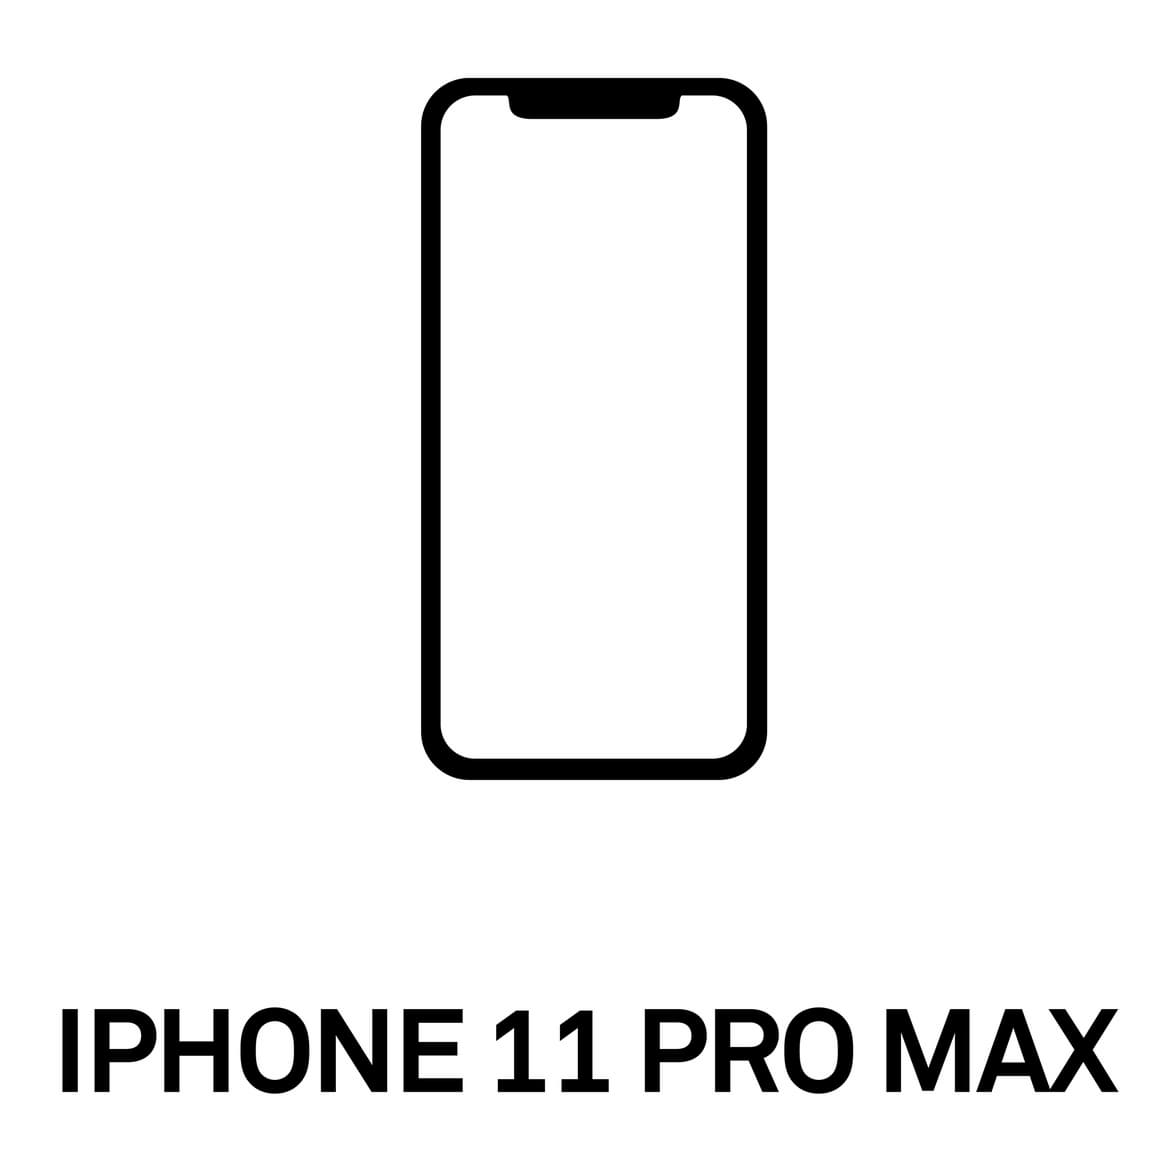 iPhone_11promax.jpg